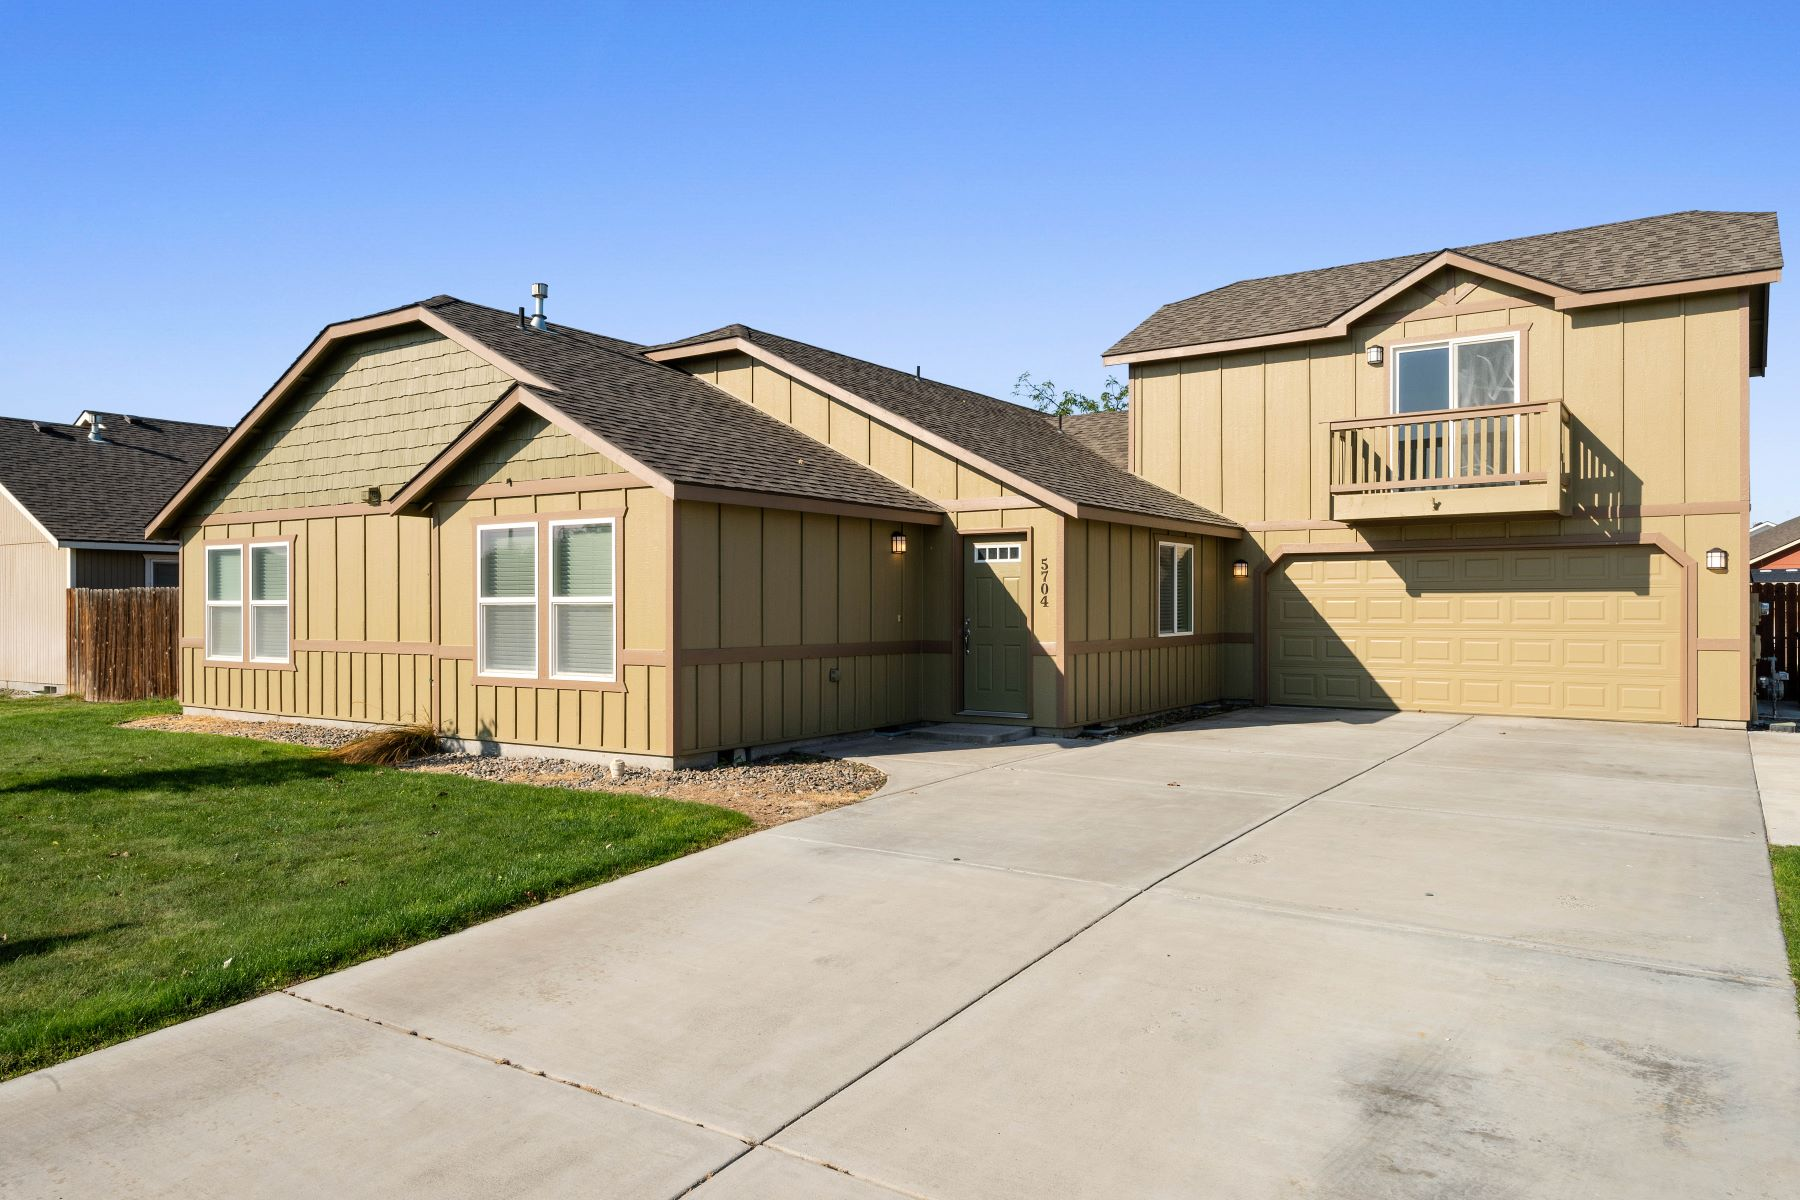 Single Family Homes for Sale at If you want a home that allows you to just move in, you are home! 5704 Robert Wayne Drive Pasco, Washington 99301 United States